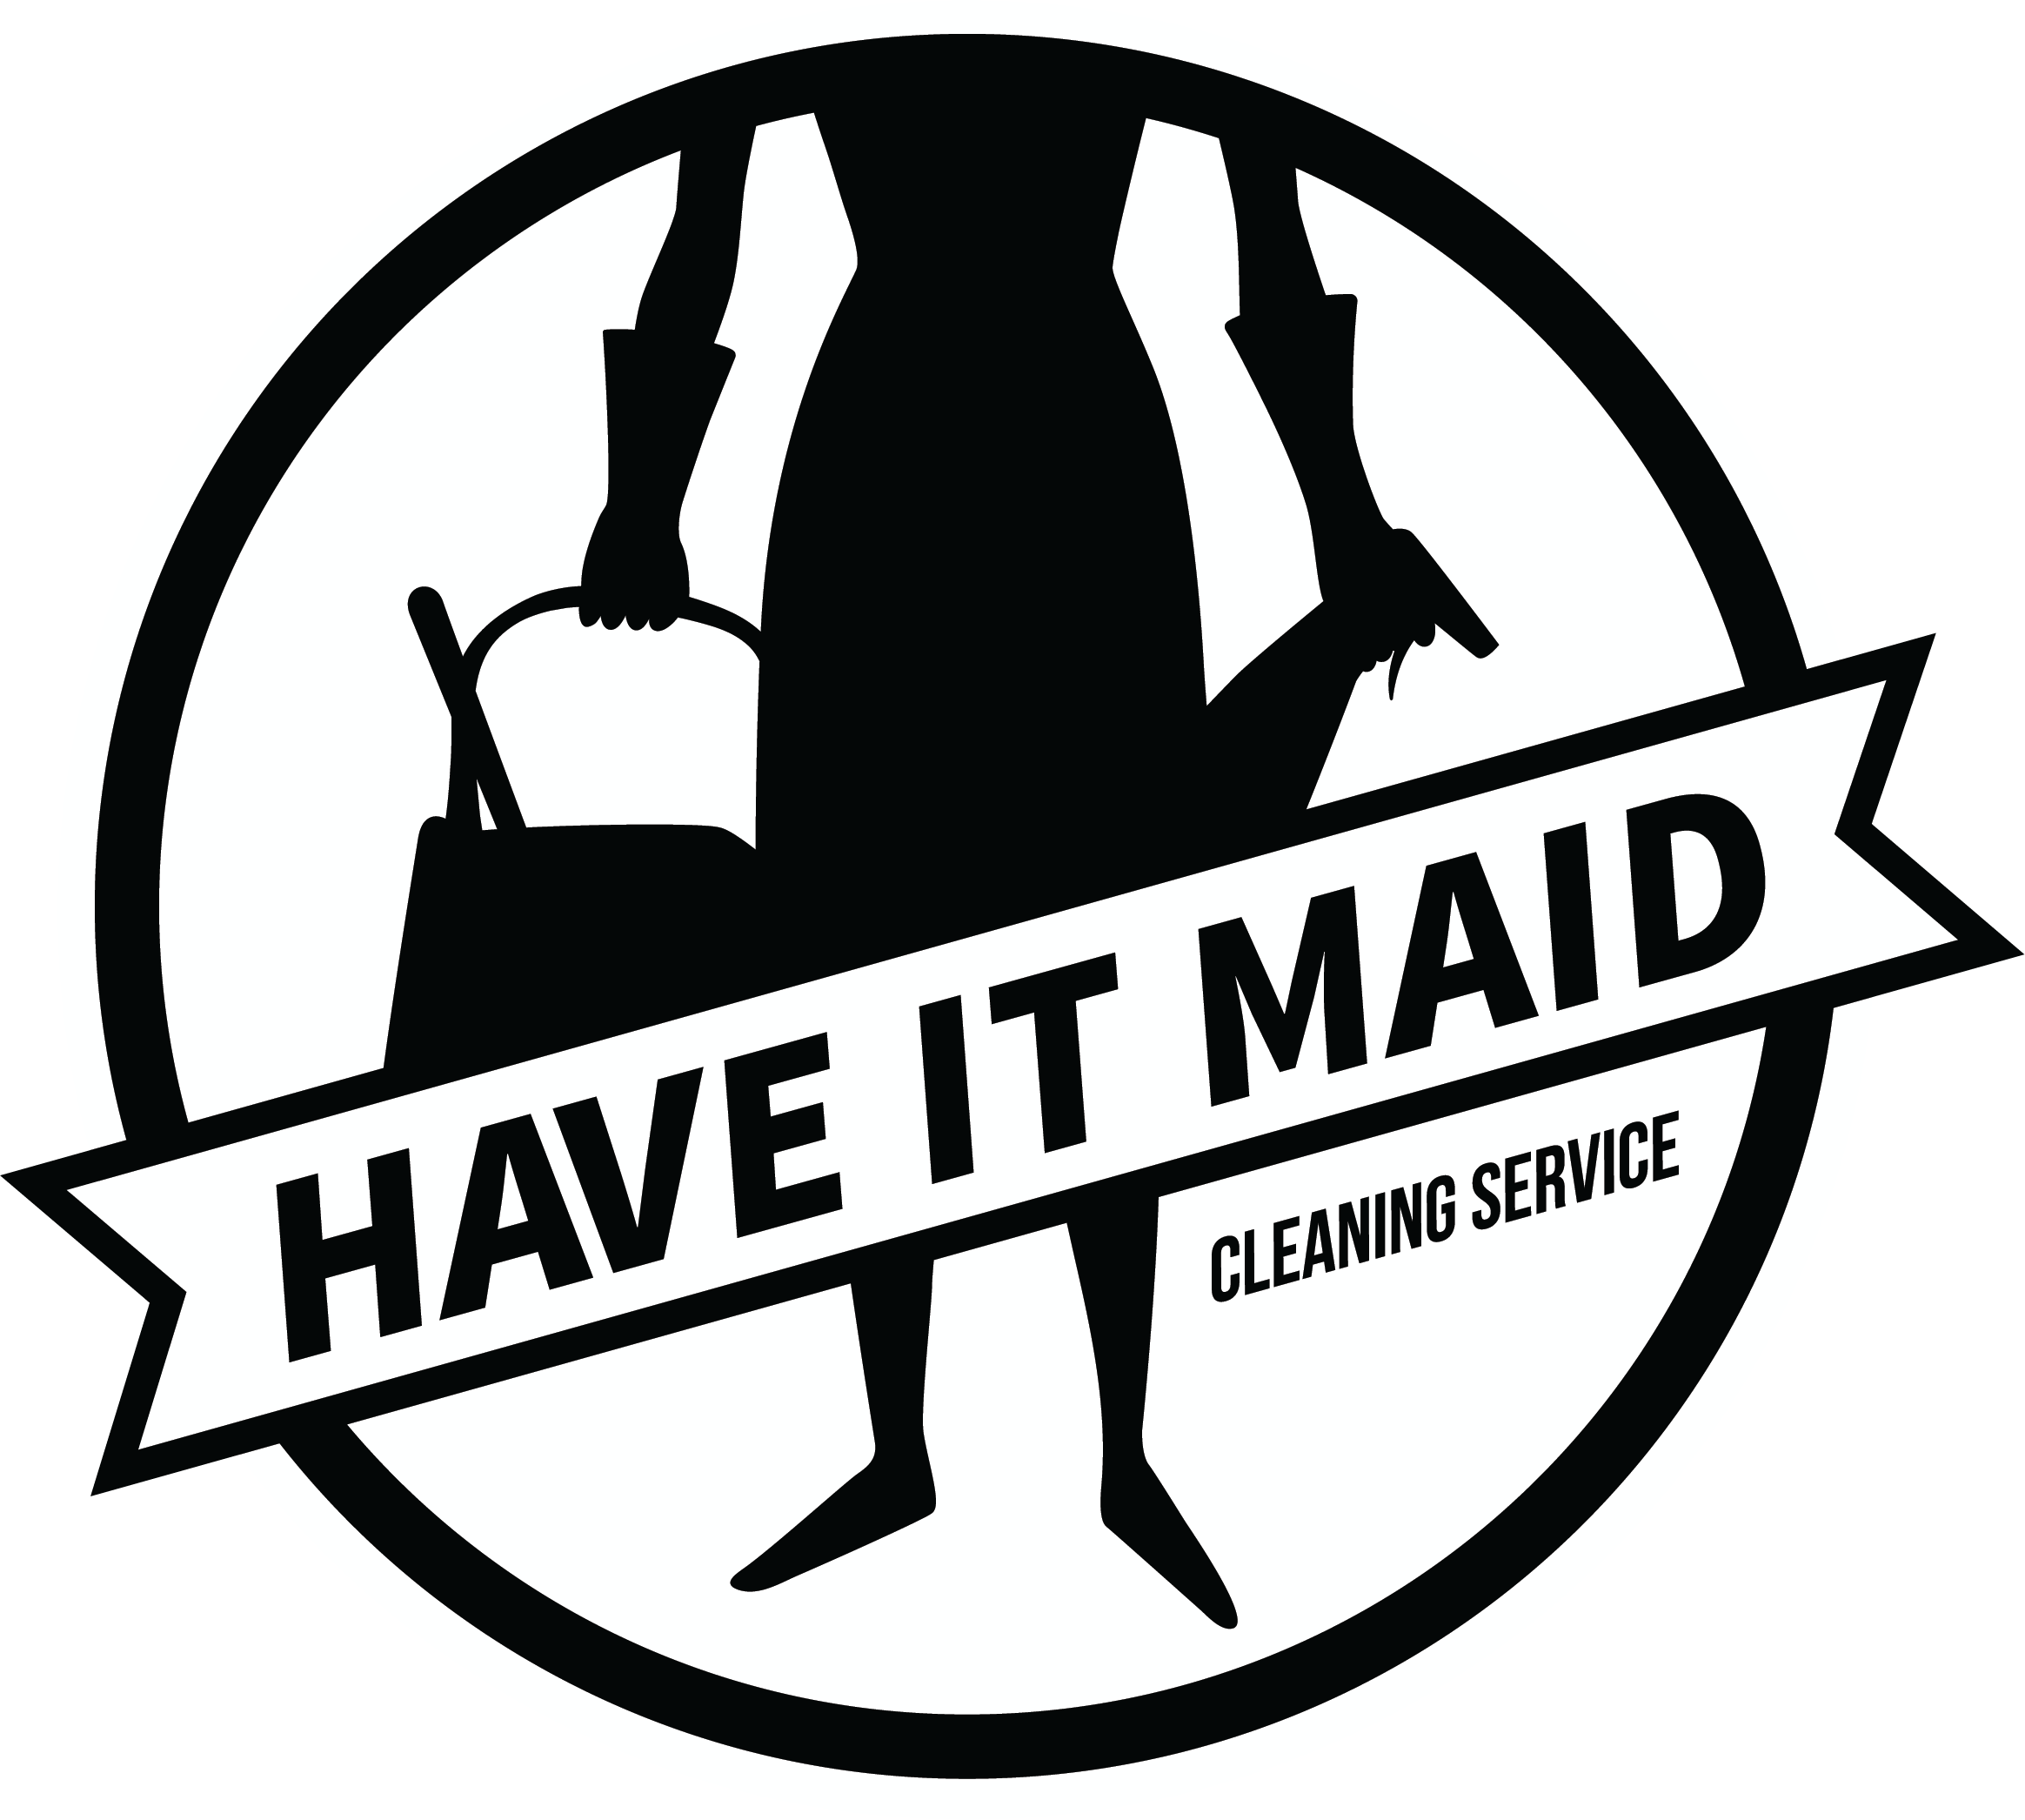 New cleaning company launches. Maid clipart housekeeping staff